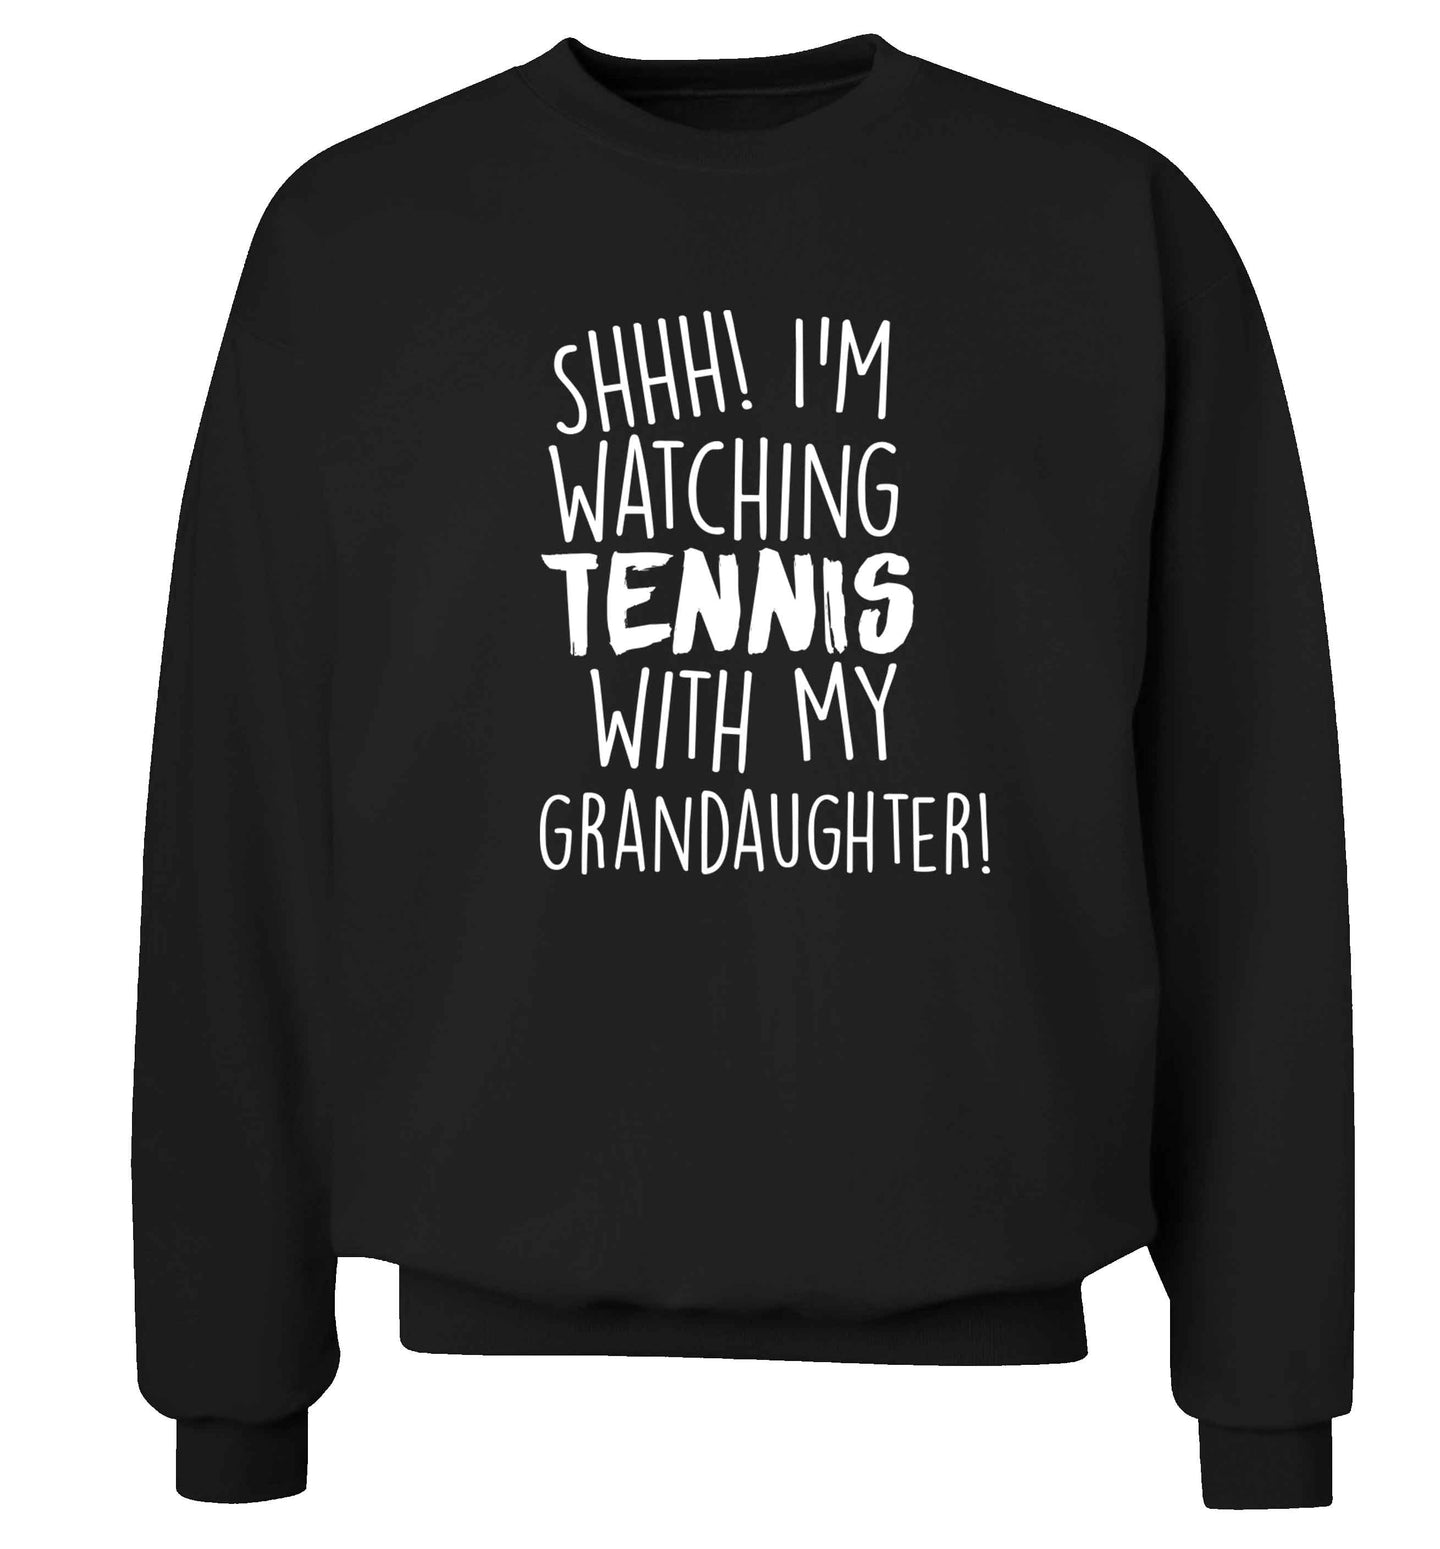 Shh! I'm watching tennis with my granddaughter! Adult's unisex black Sweater 2XL